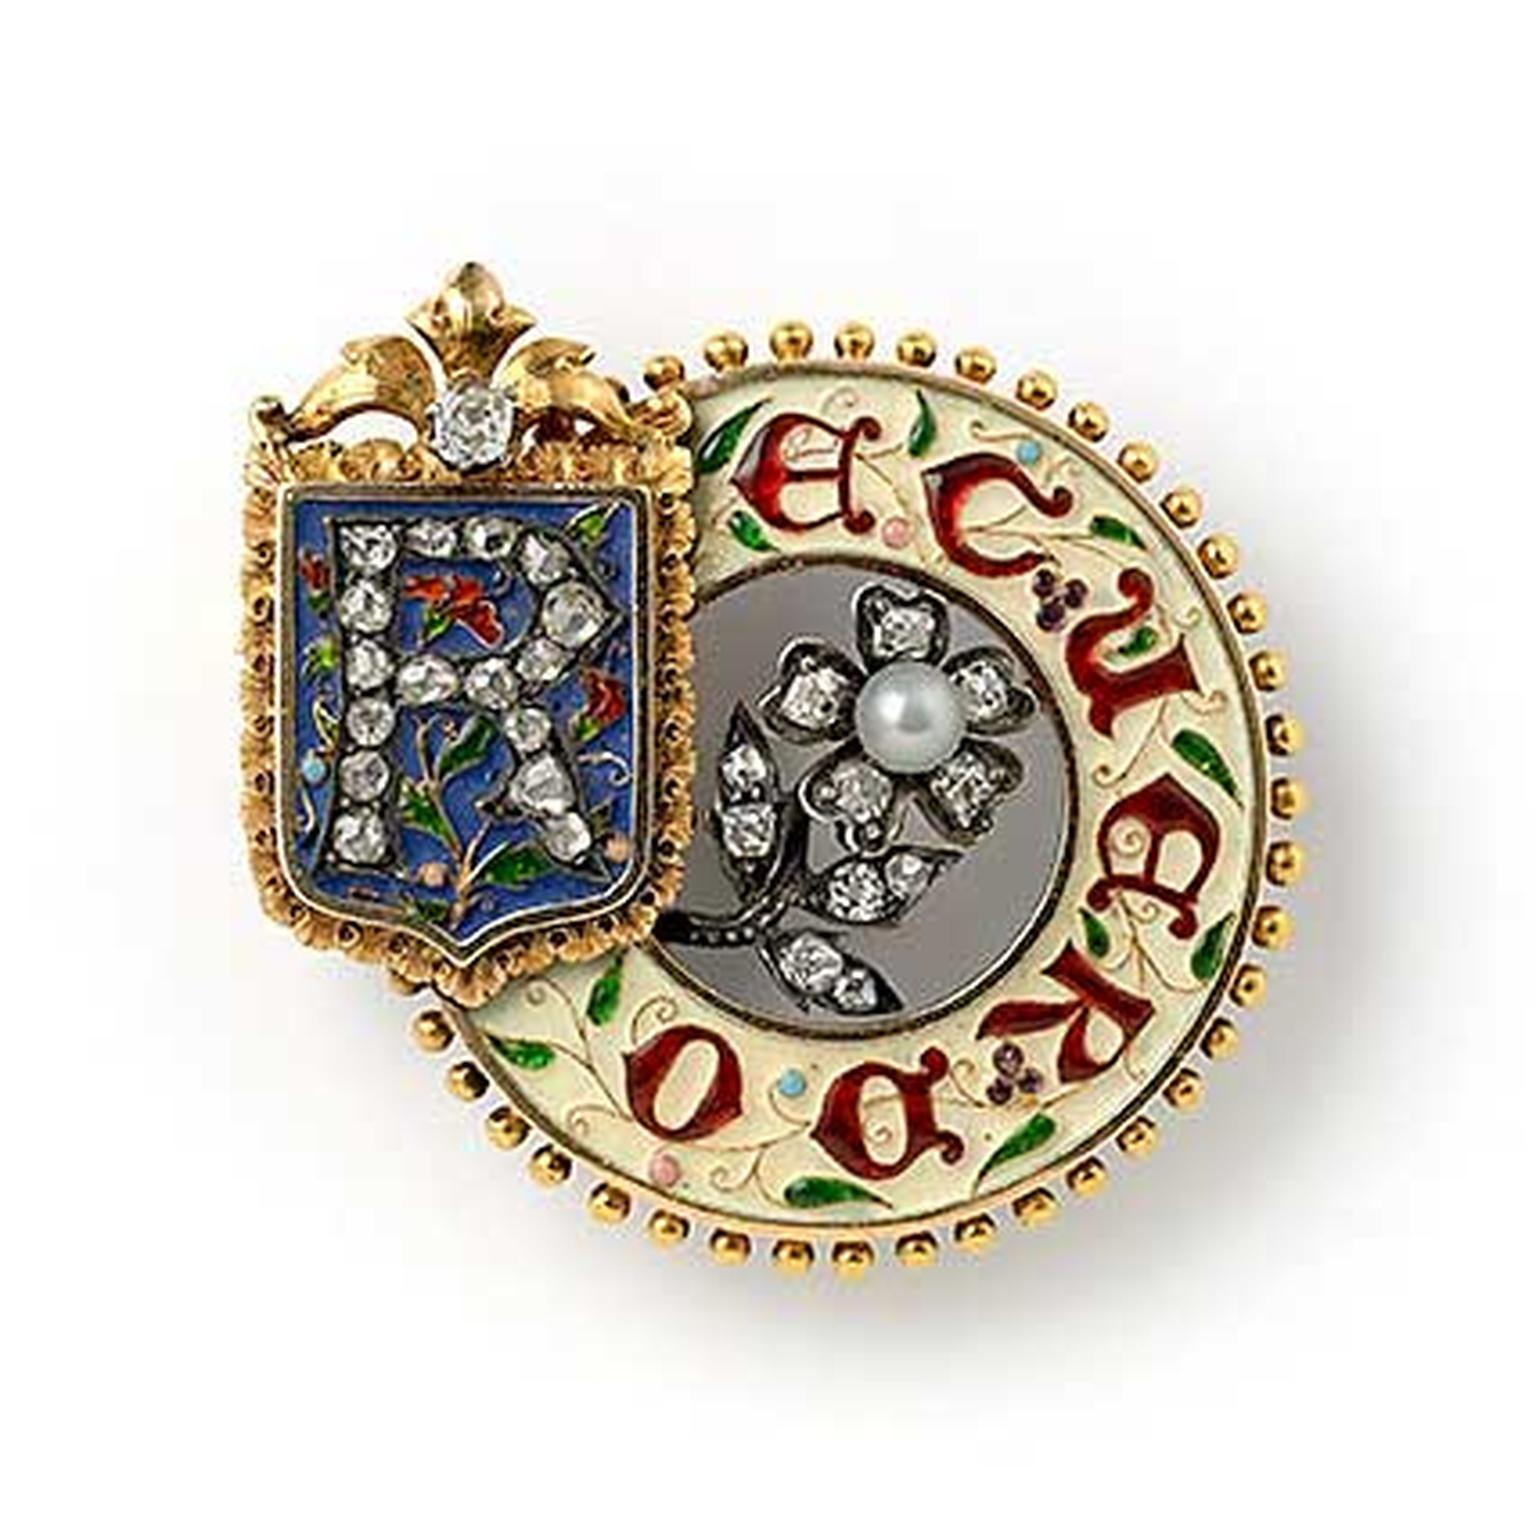 Lucien Falize circle memento brooch